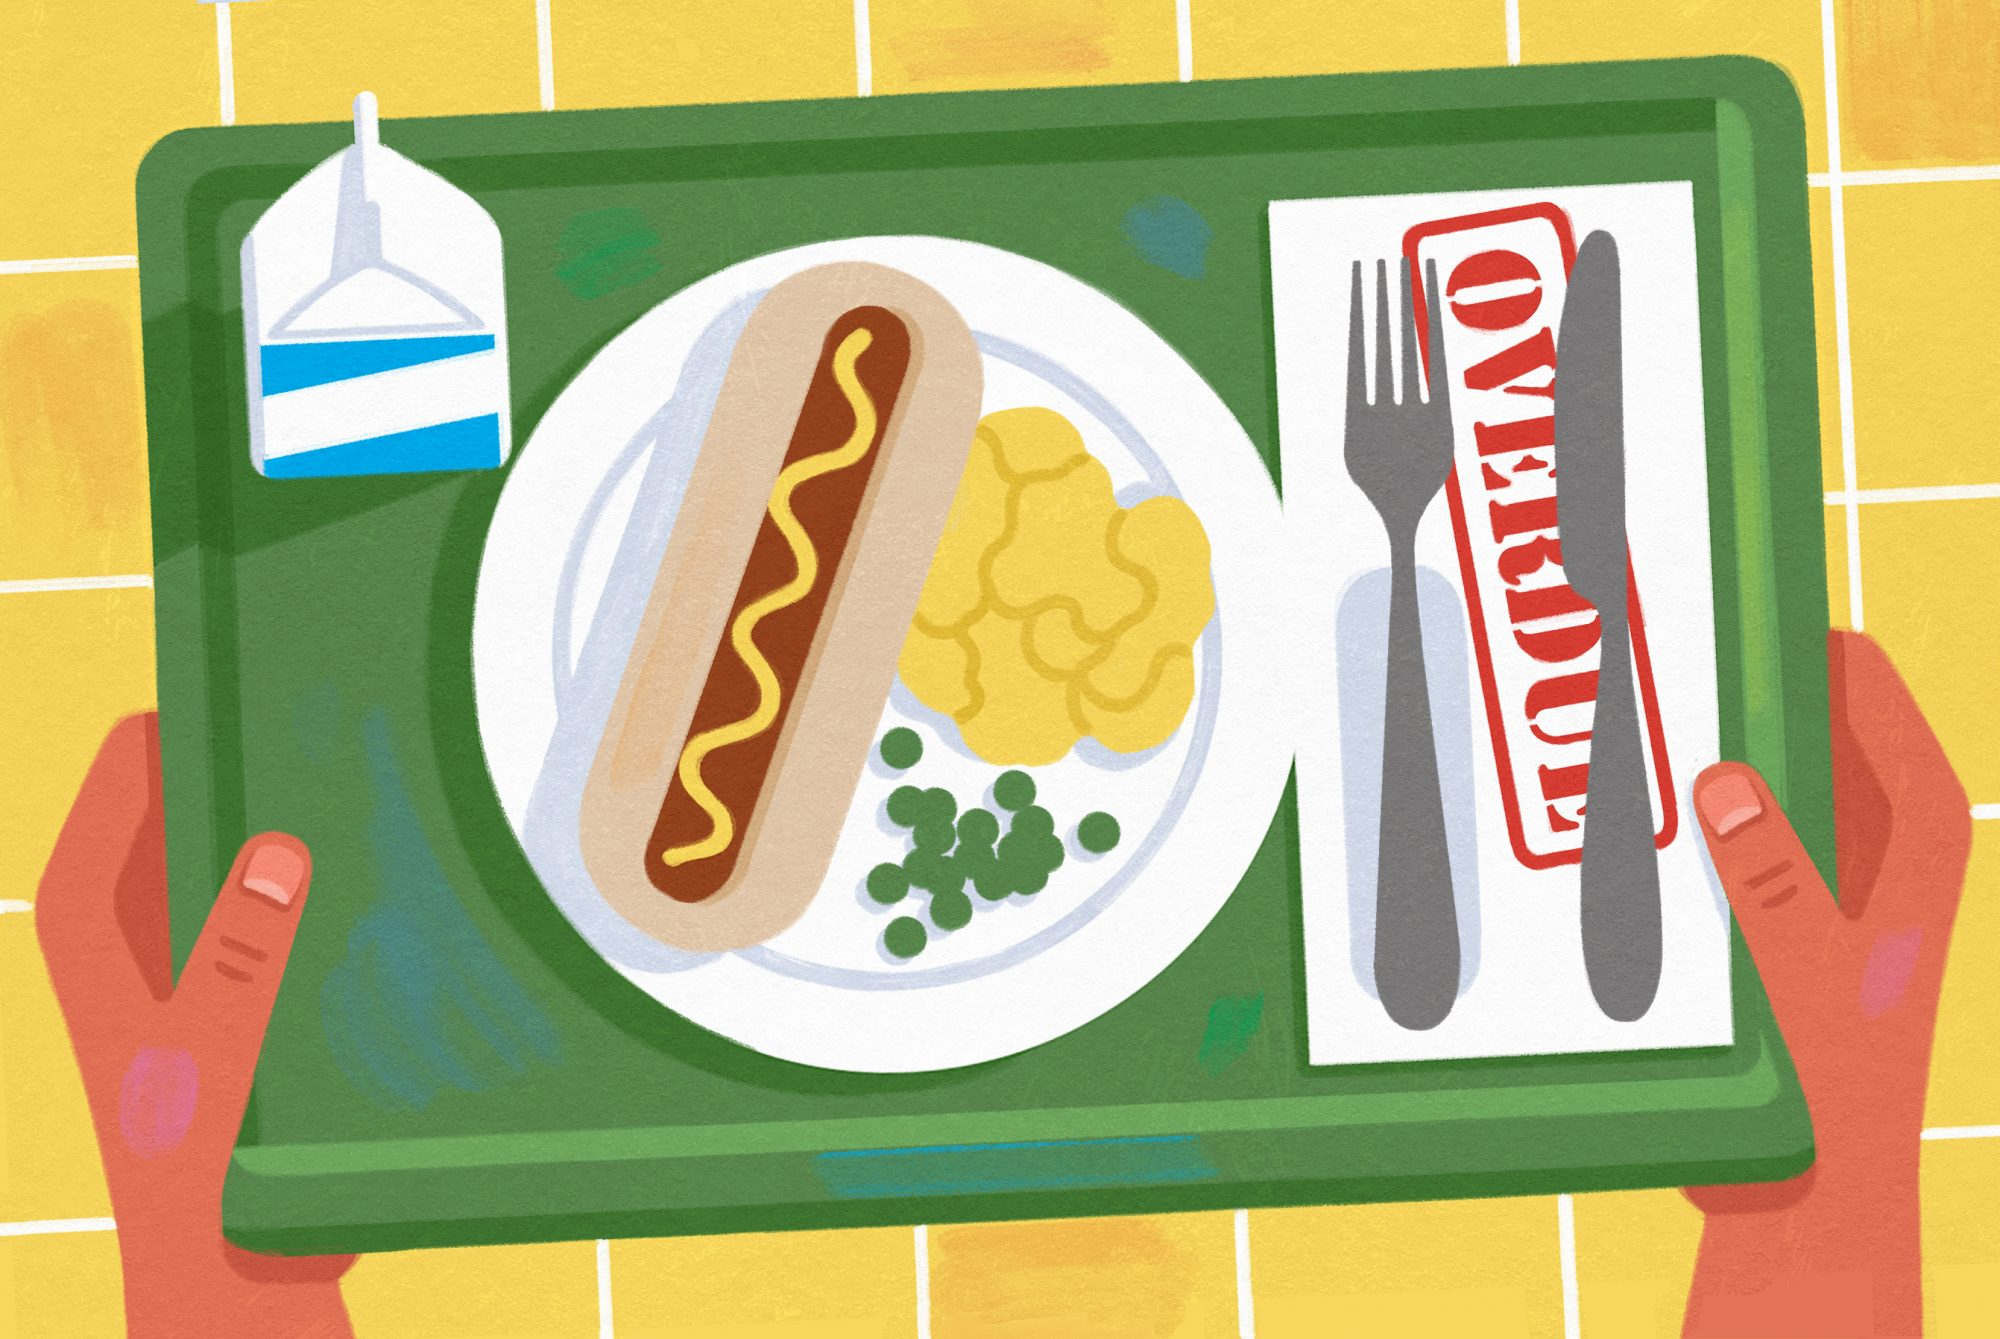 illustration of school lunch tray in which the napkin is an overdue notice